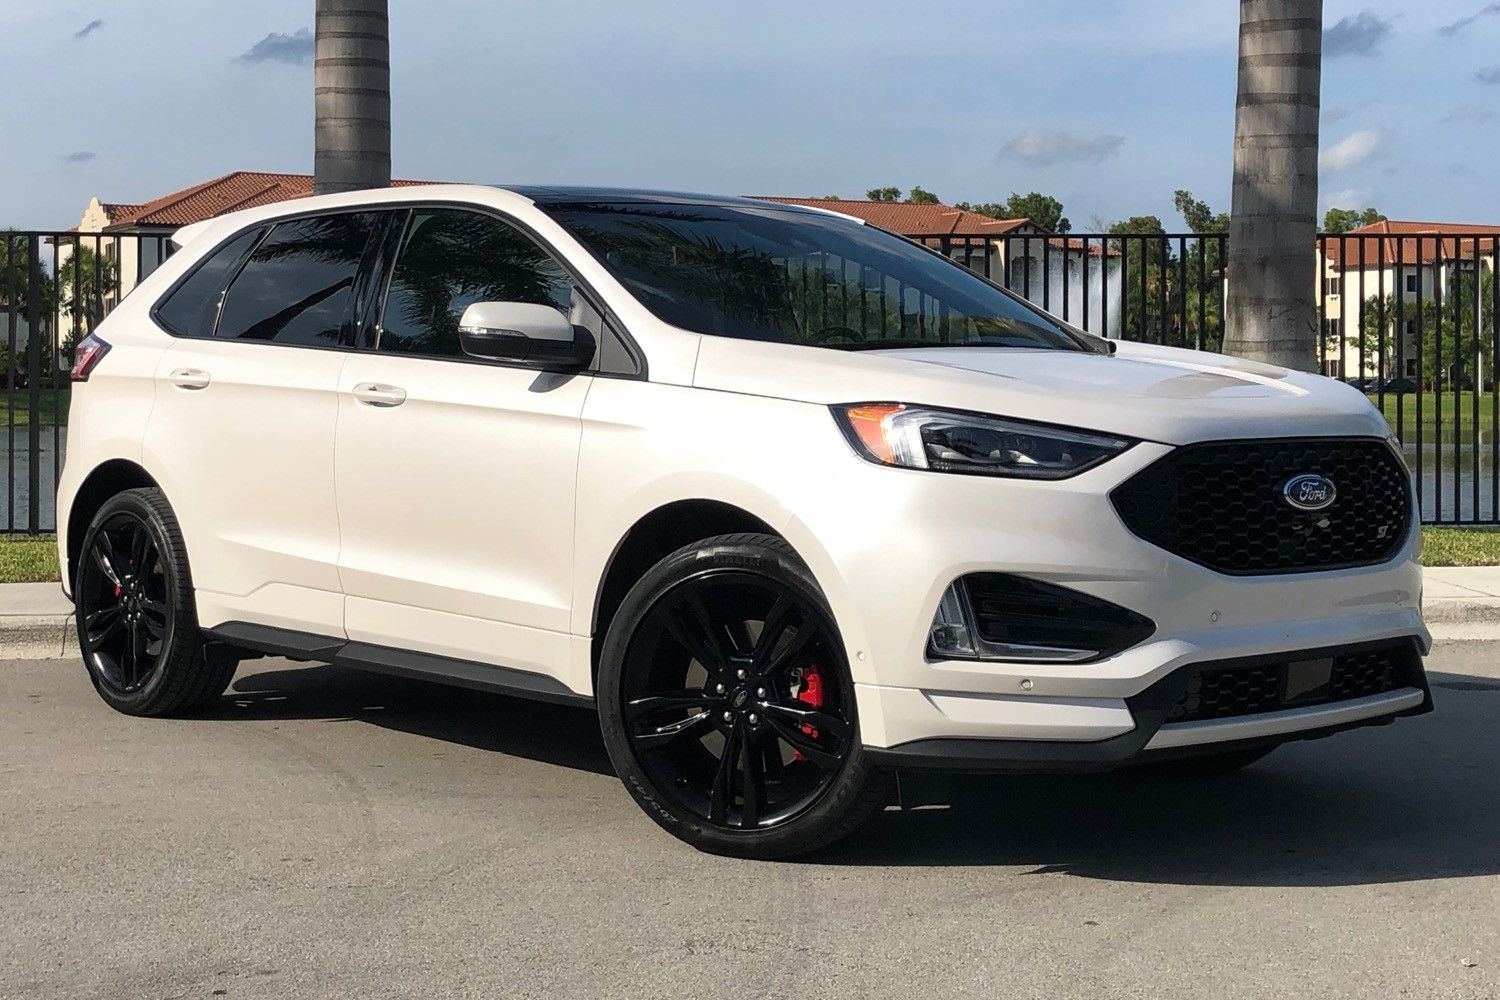 2020 Ford Edge St Concept in 2020 Ford suv, Ford edge